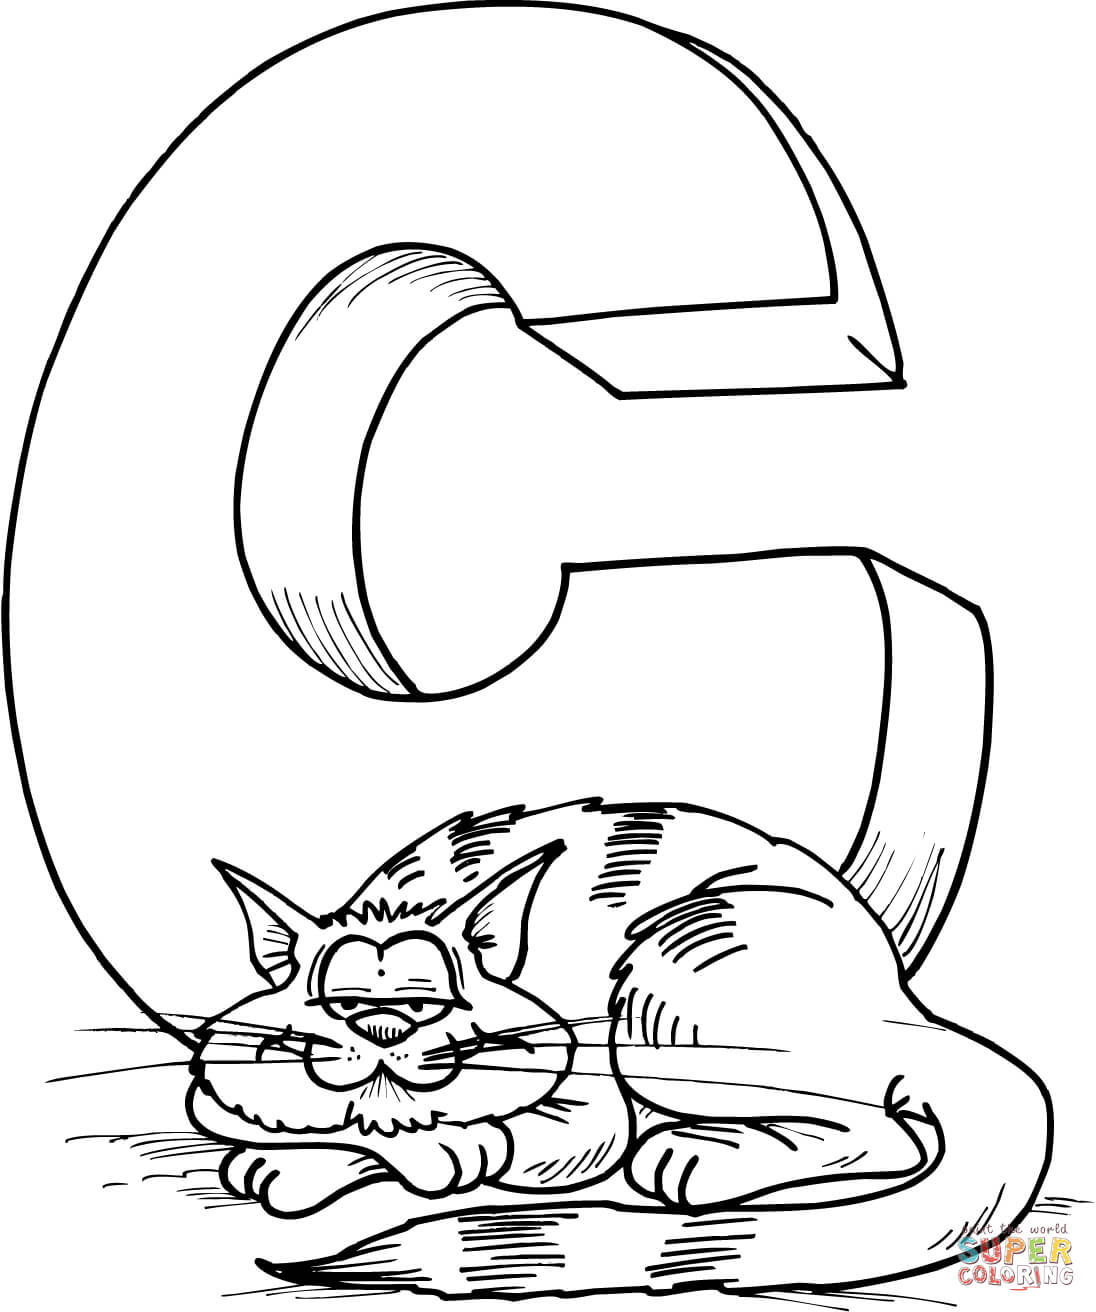 letter c coloring page letter c coloring pages to download and print for free coloring letter page c